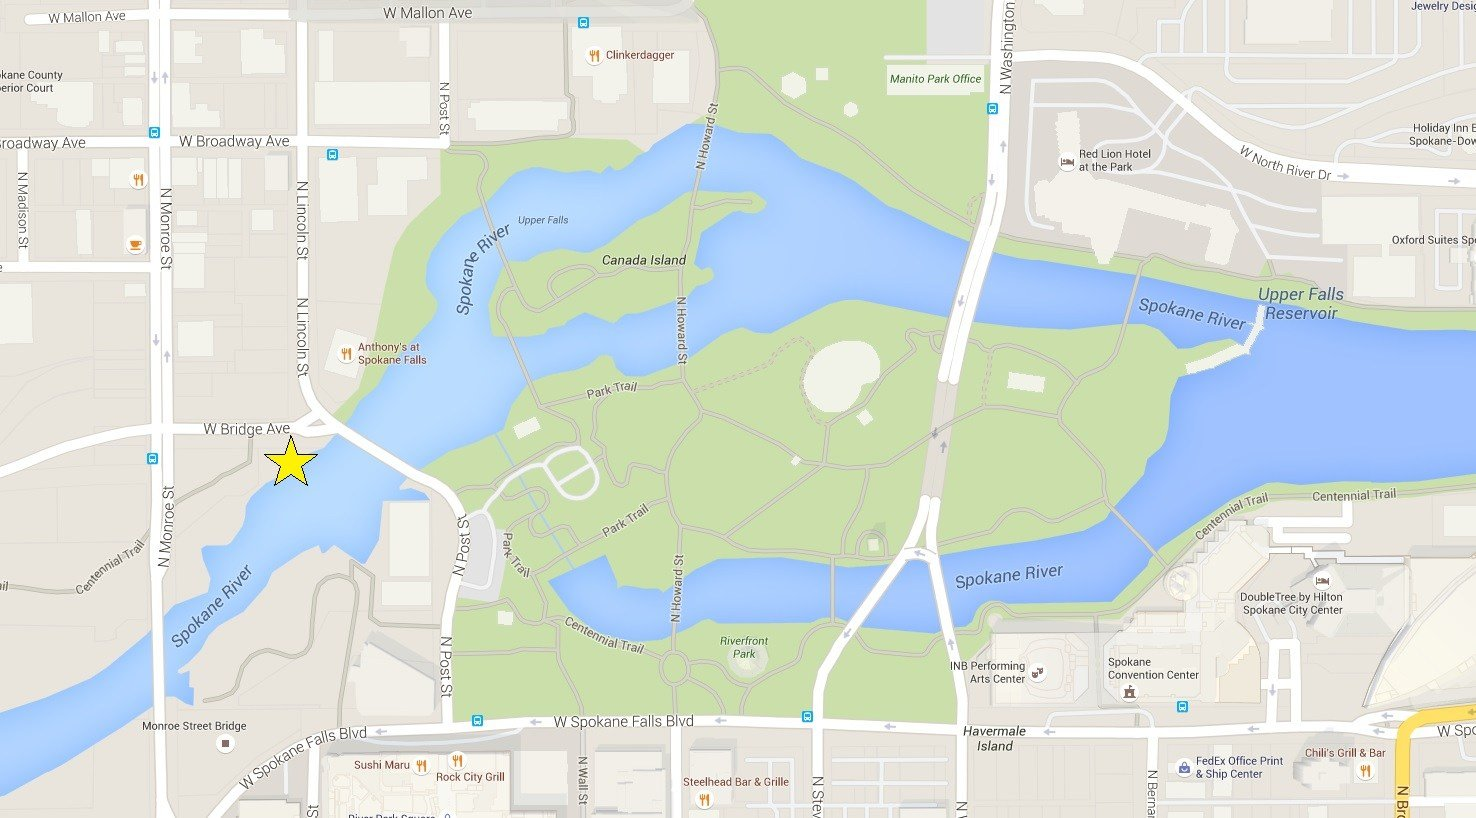 This map shows where Al Roker will be Sunday morning